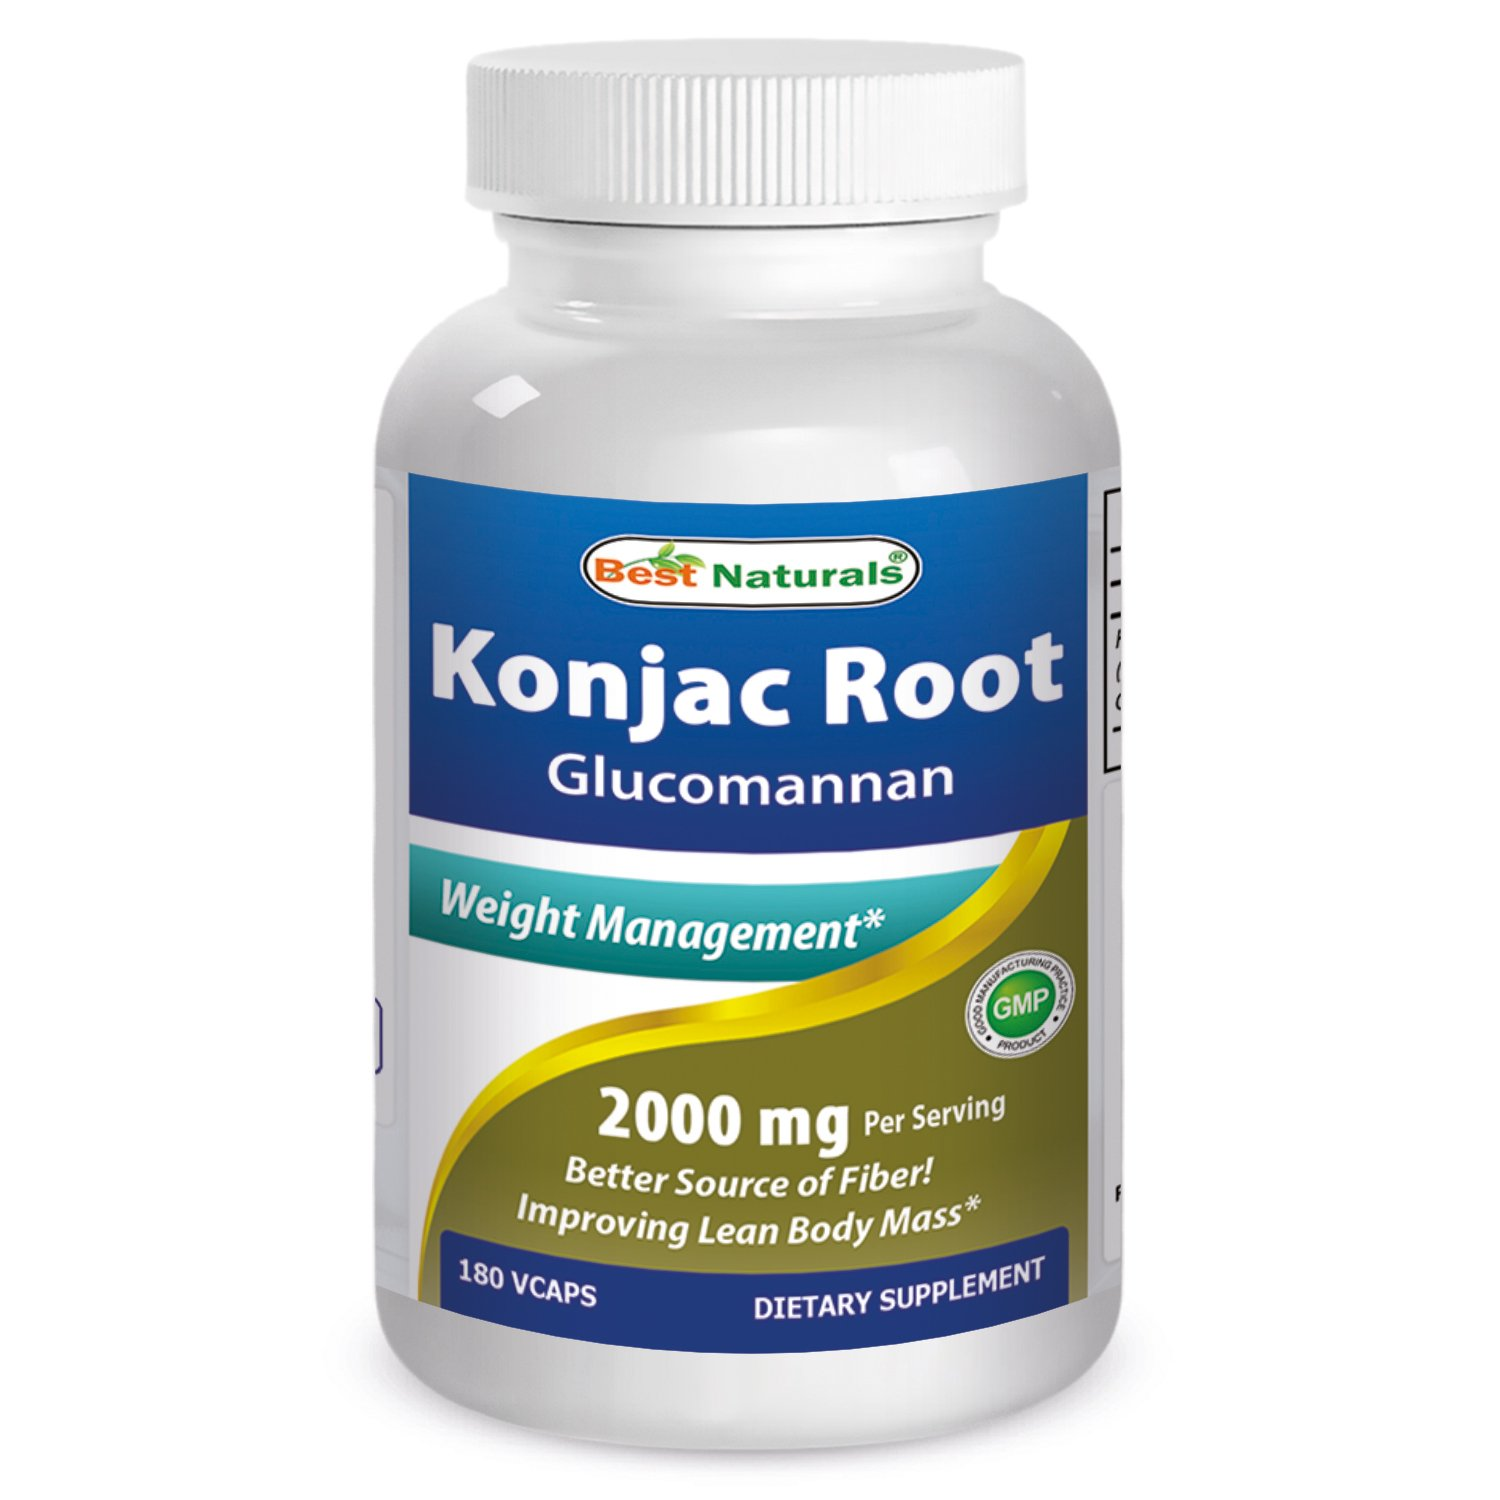 Best Naturals Konjac Root 2000mg, 180 Count by Best Naturals